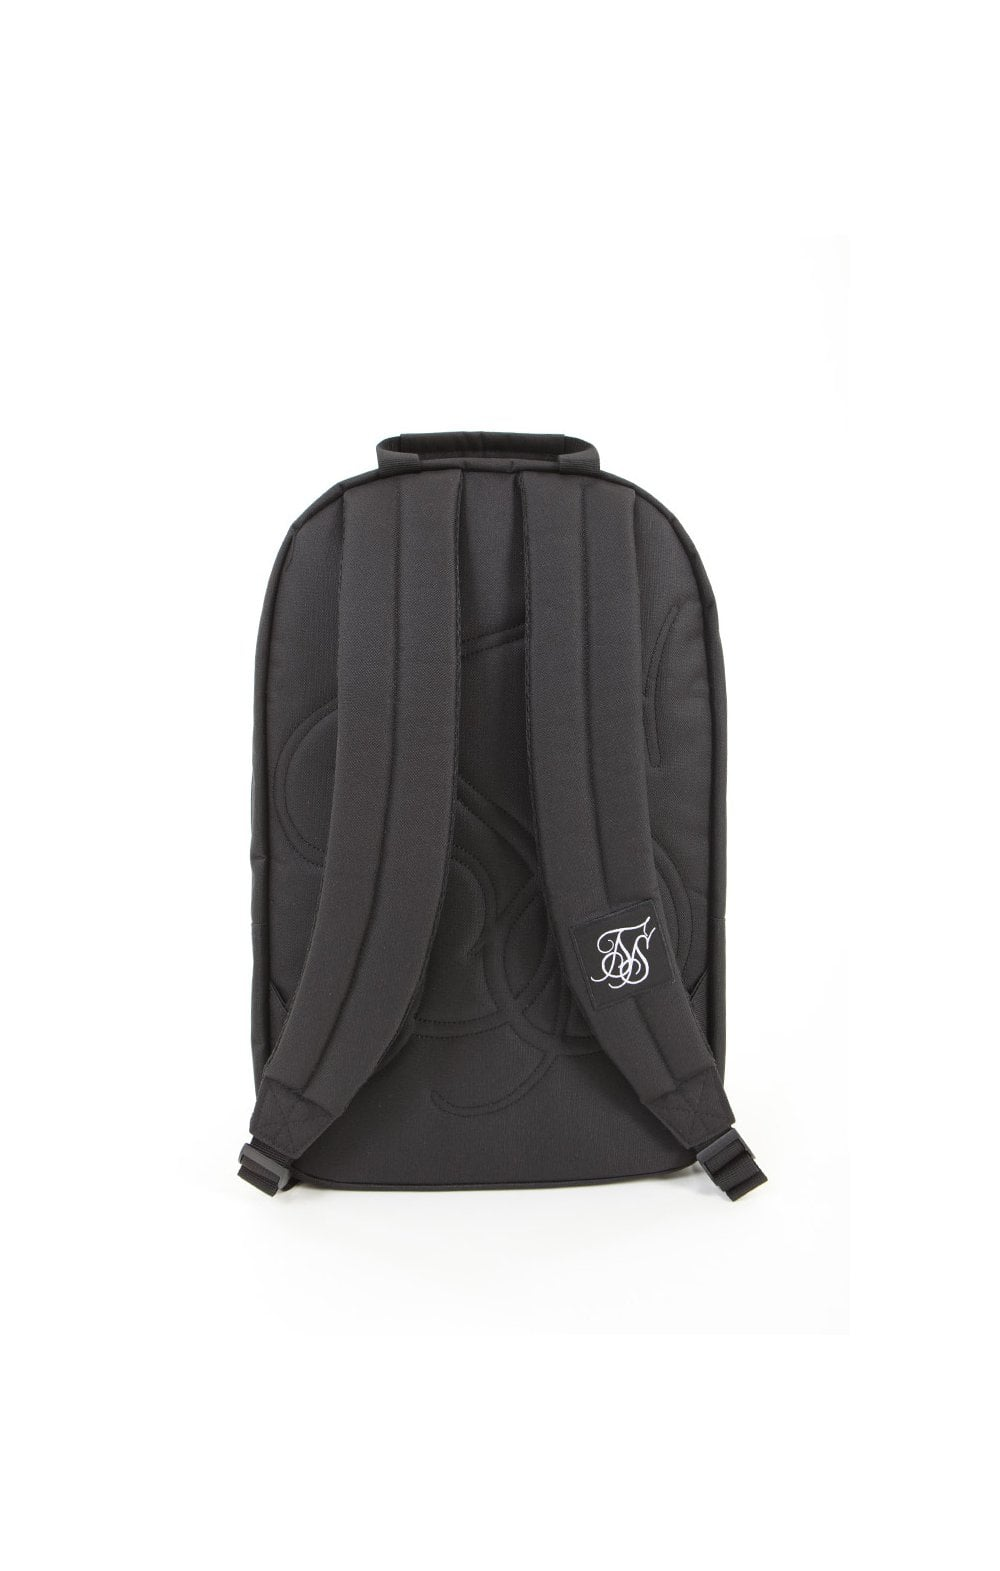 SikSilk Backpack- Navy (2)